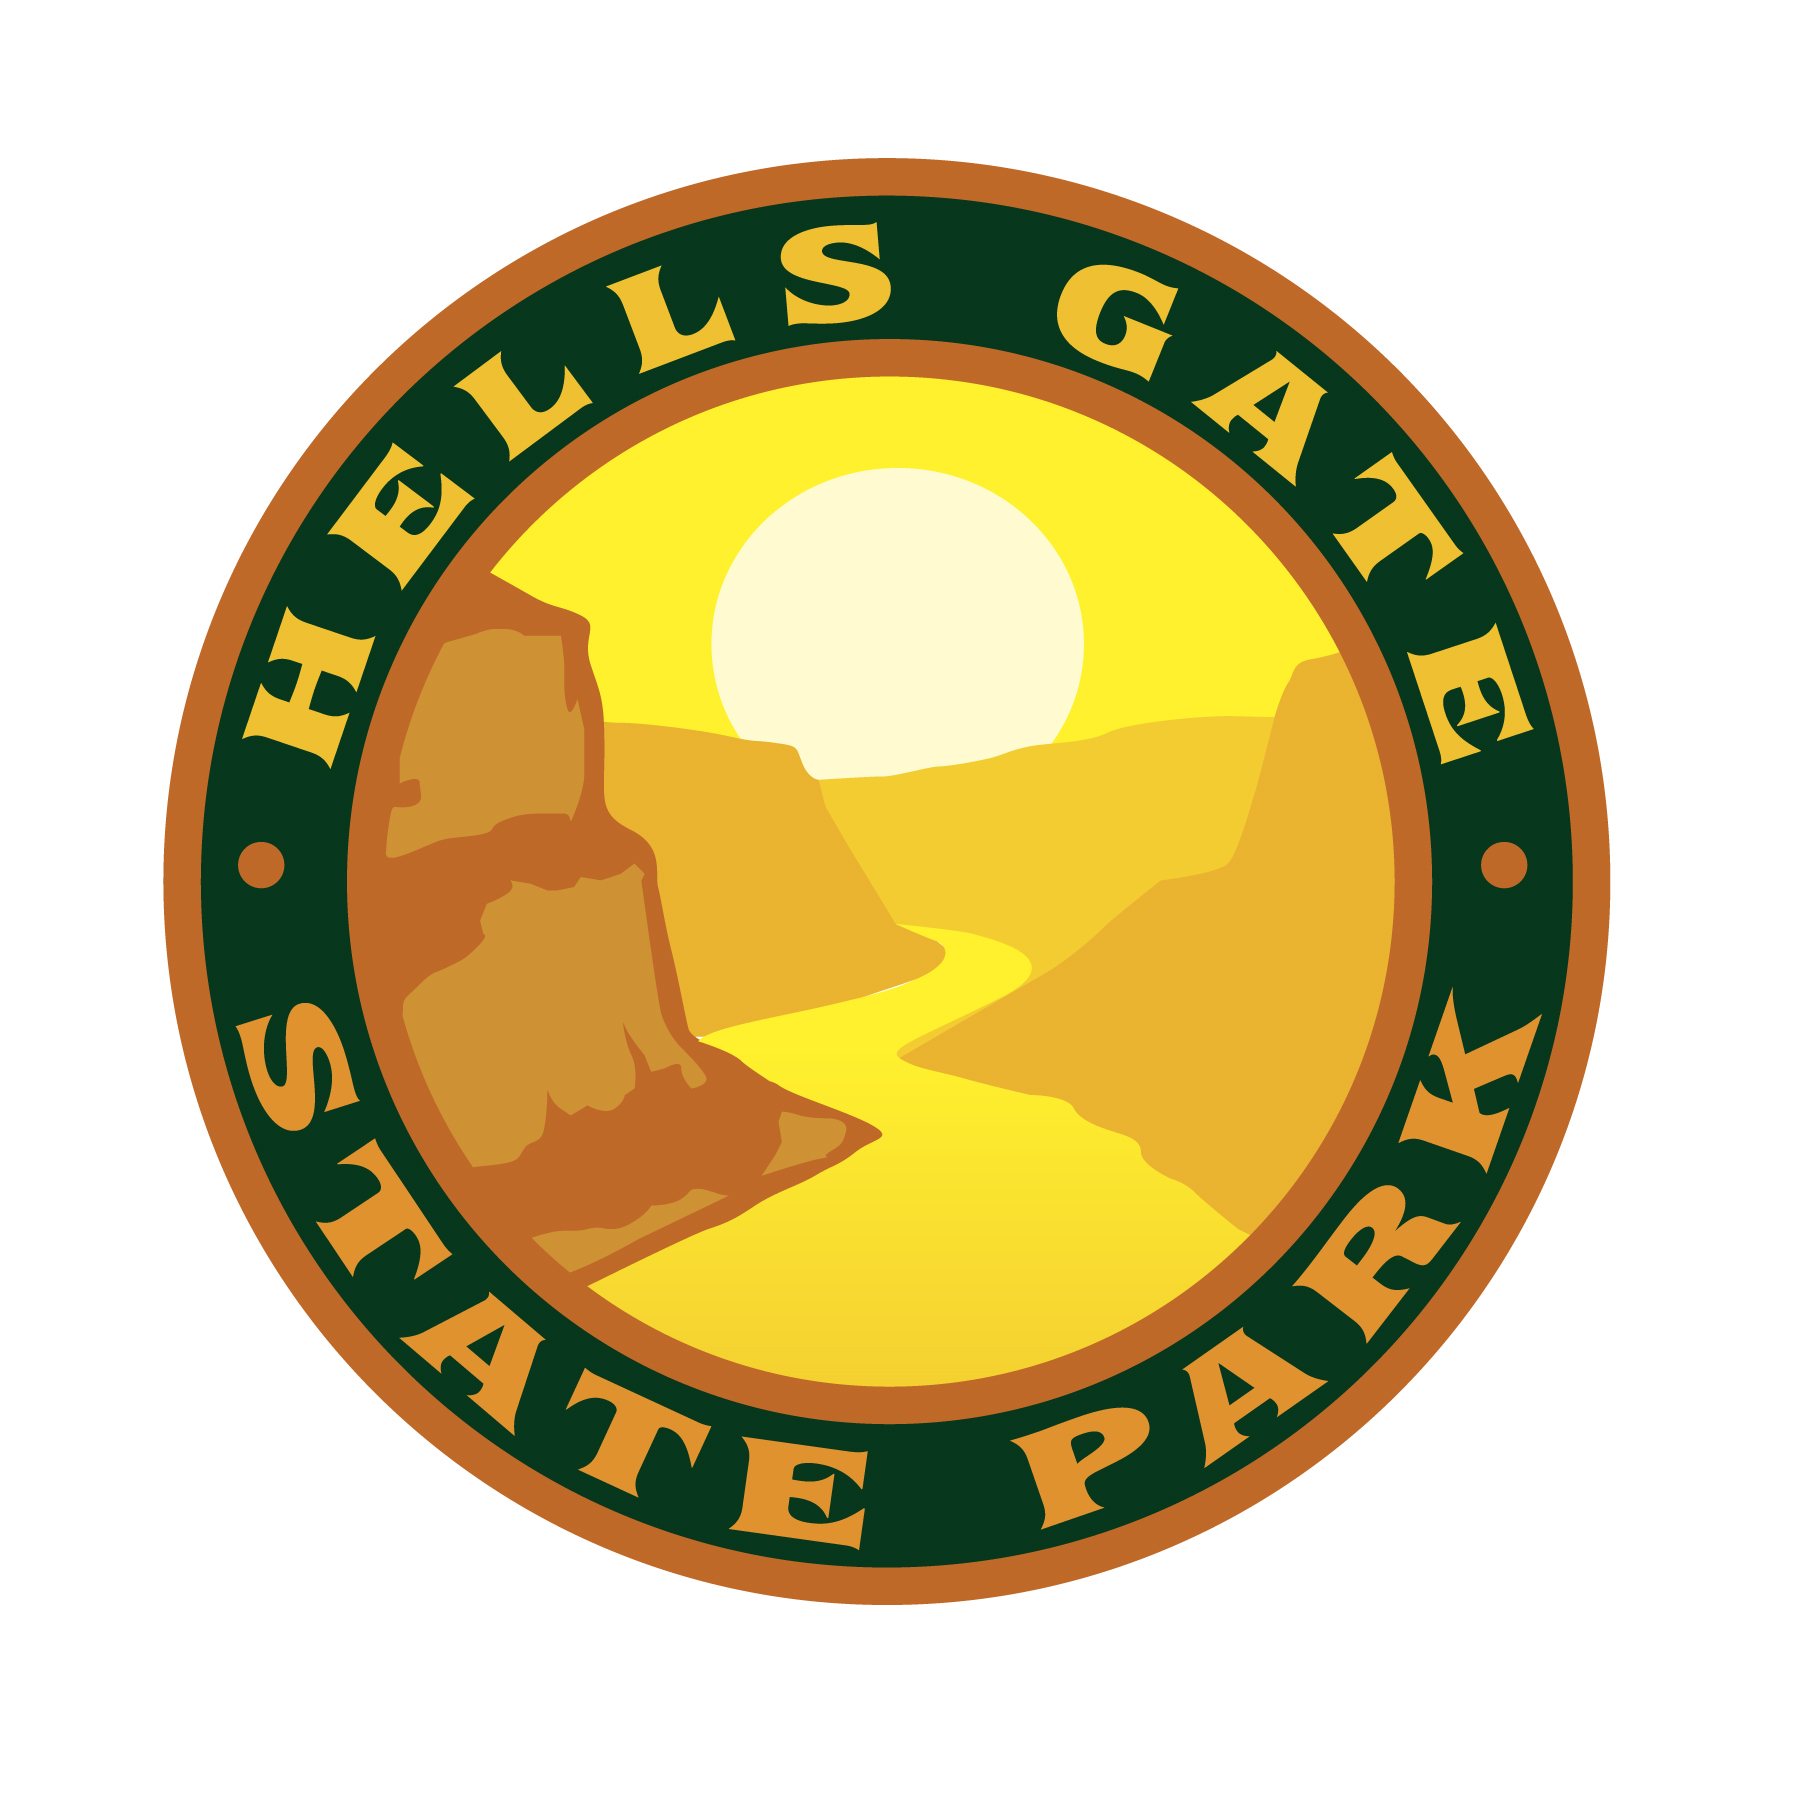 Hells Gate State Park State Symbols Usa